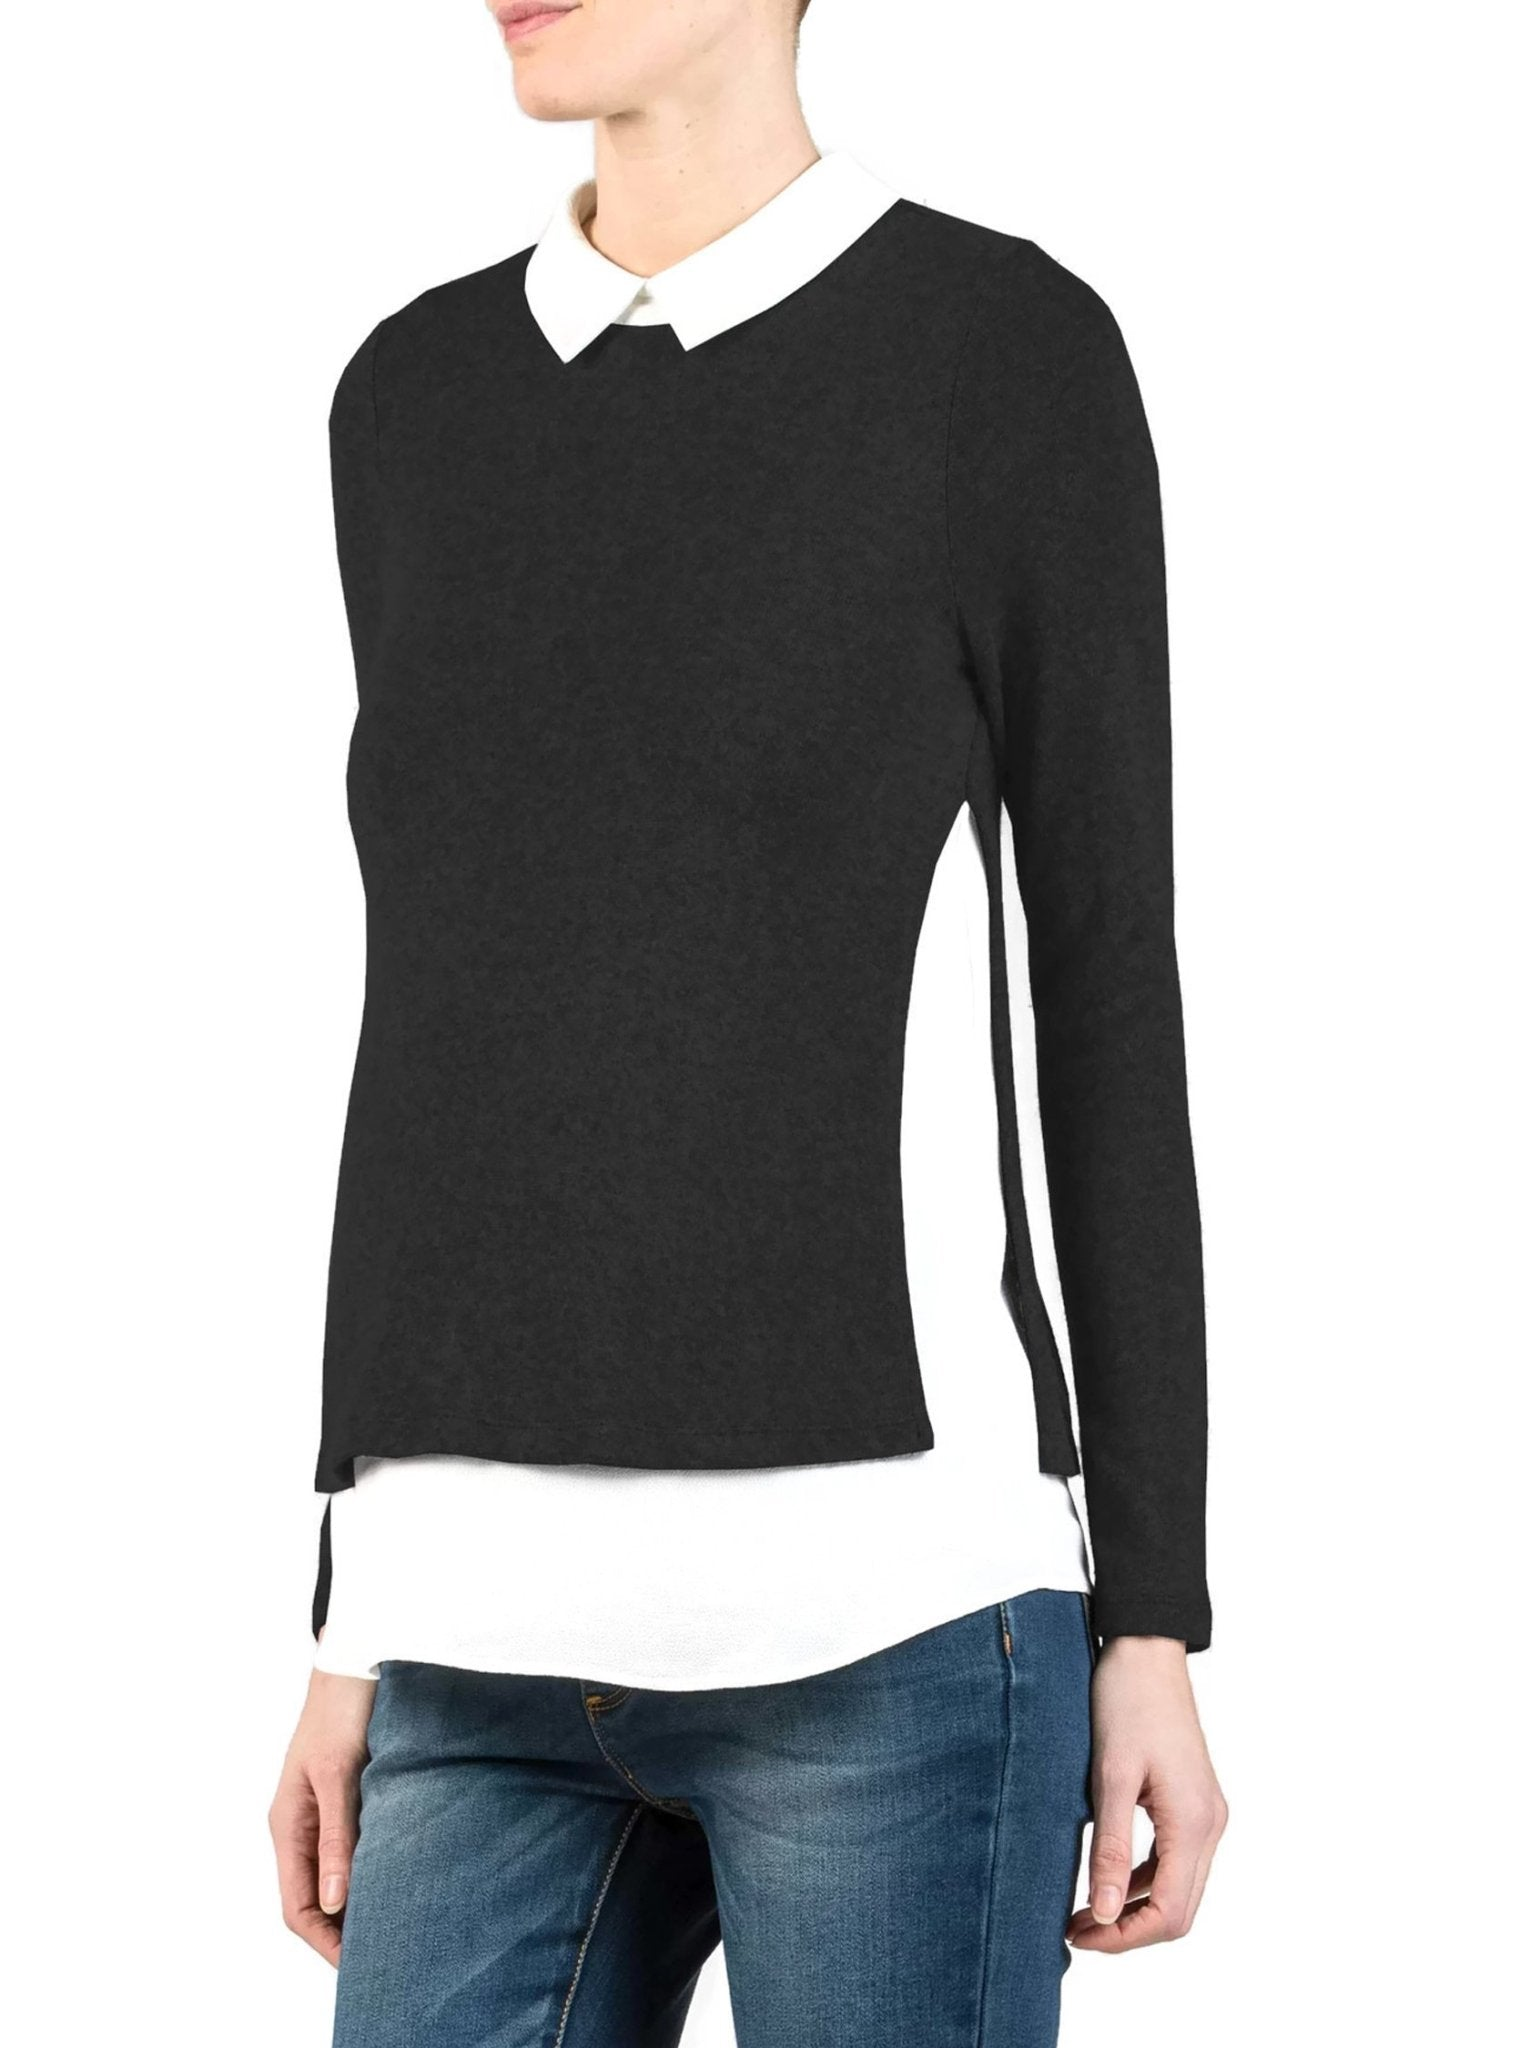 Collared Maternity Sweater Shirt - Black - Mums and Bumps